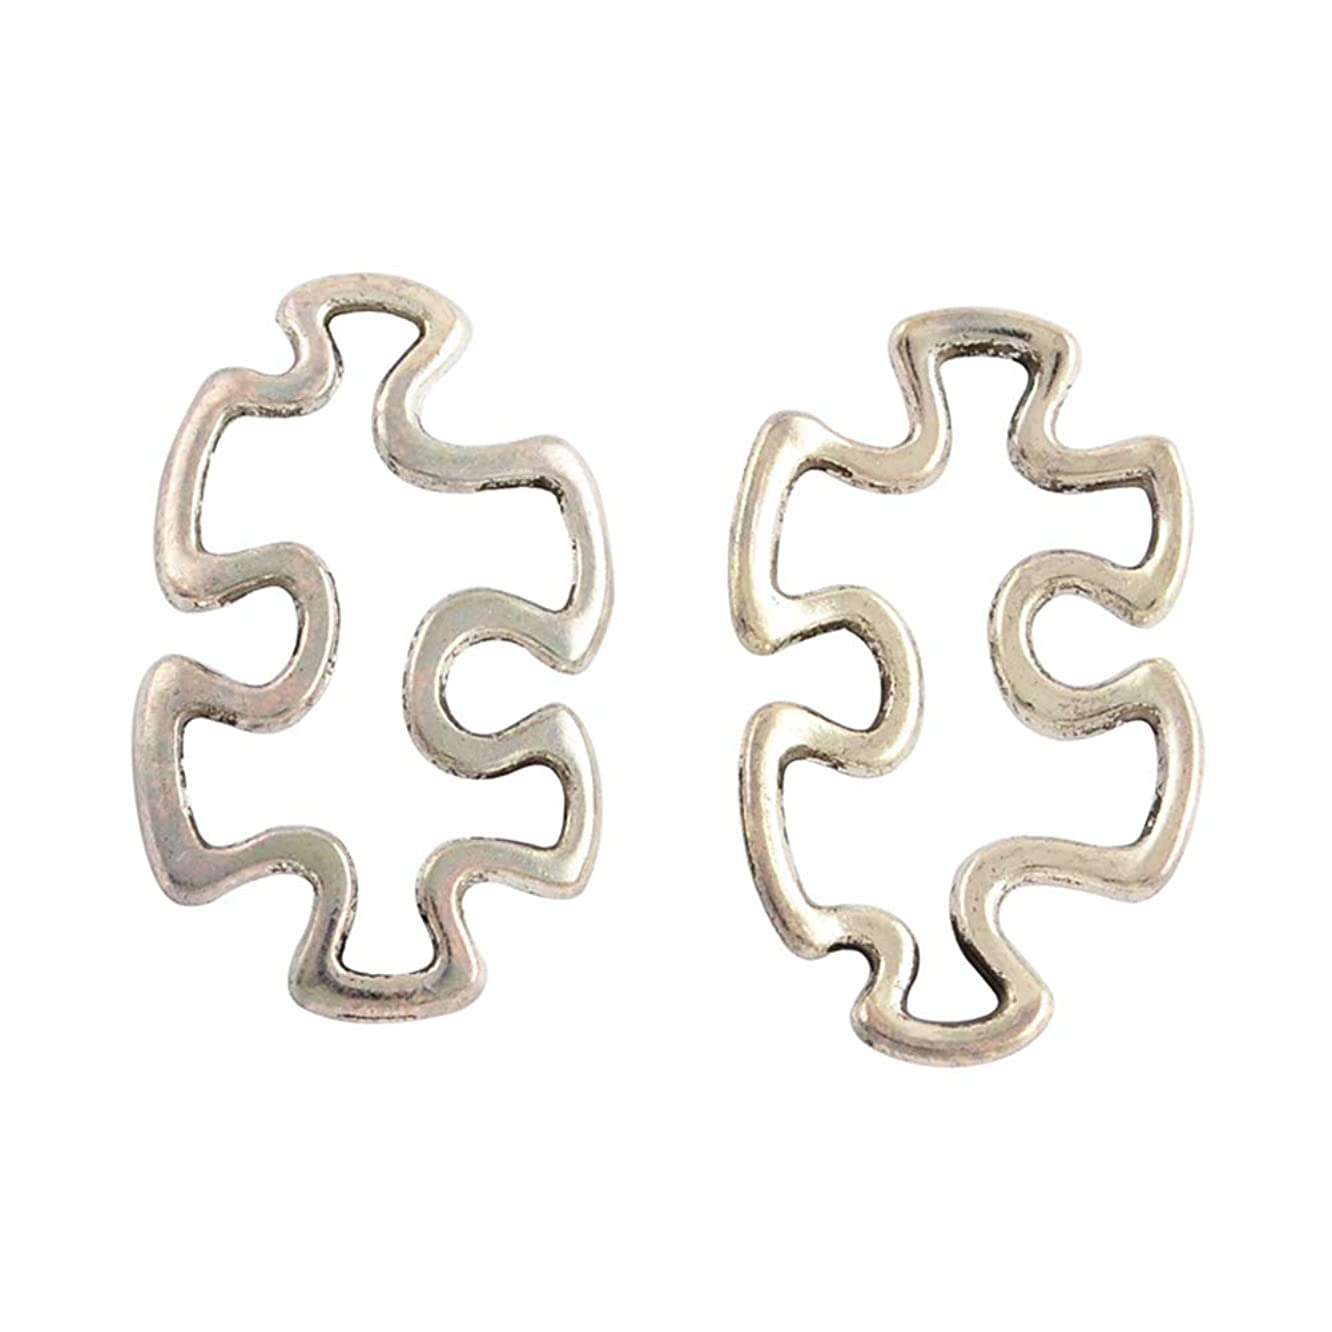 PH PandaHall 200pcs Alloy Autism Puzzle Jigsaw Charm Tibetan Style Linking Rings Antique Silver Charm Links for DIY Crafting Bracelet Necklace Jewelry Making Accessories